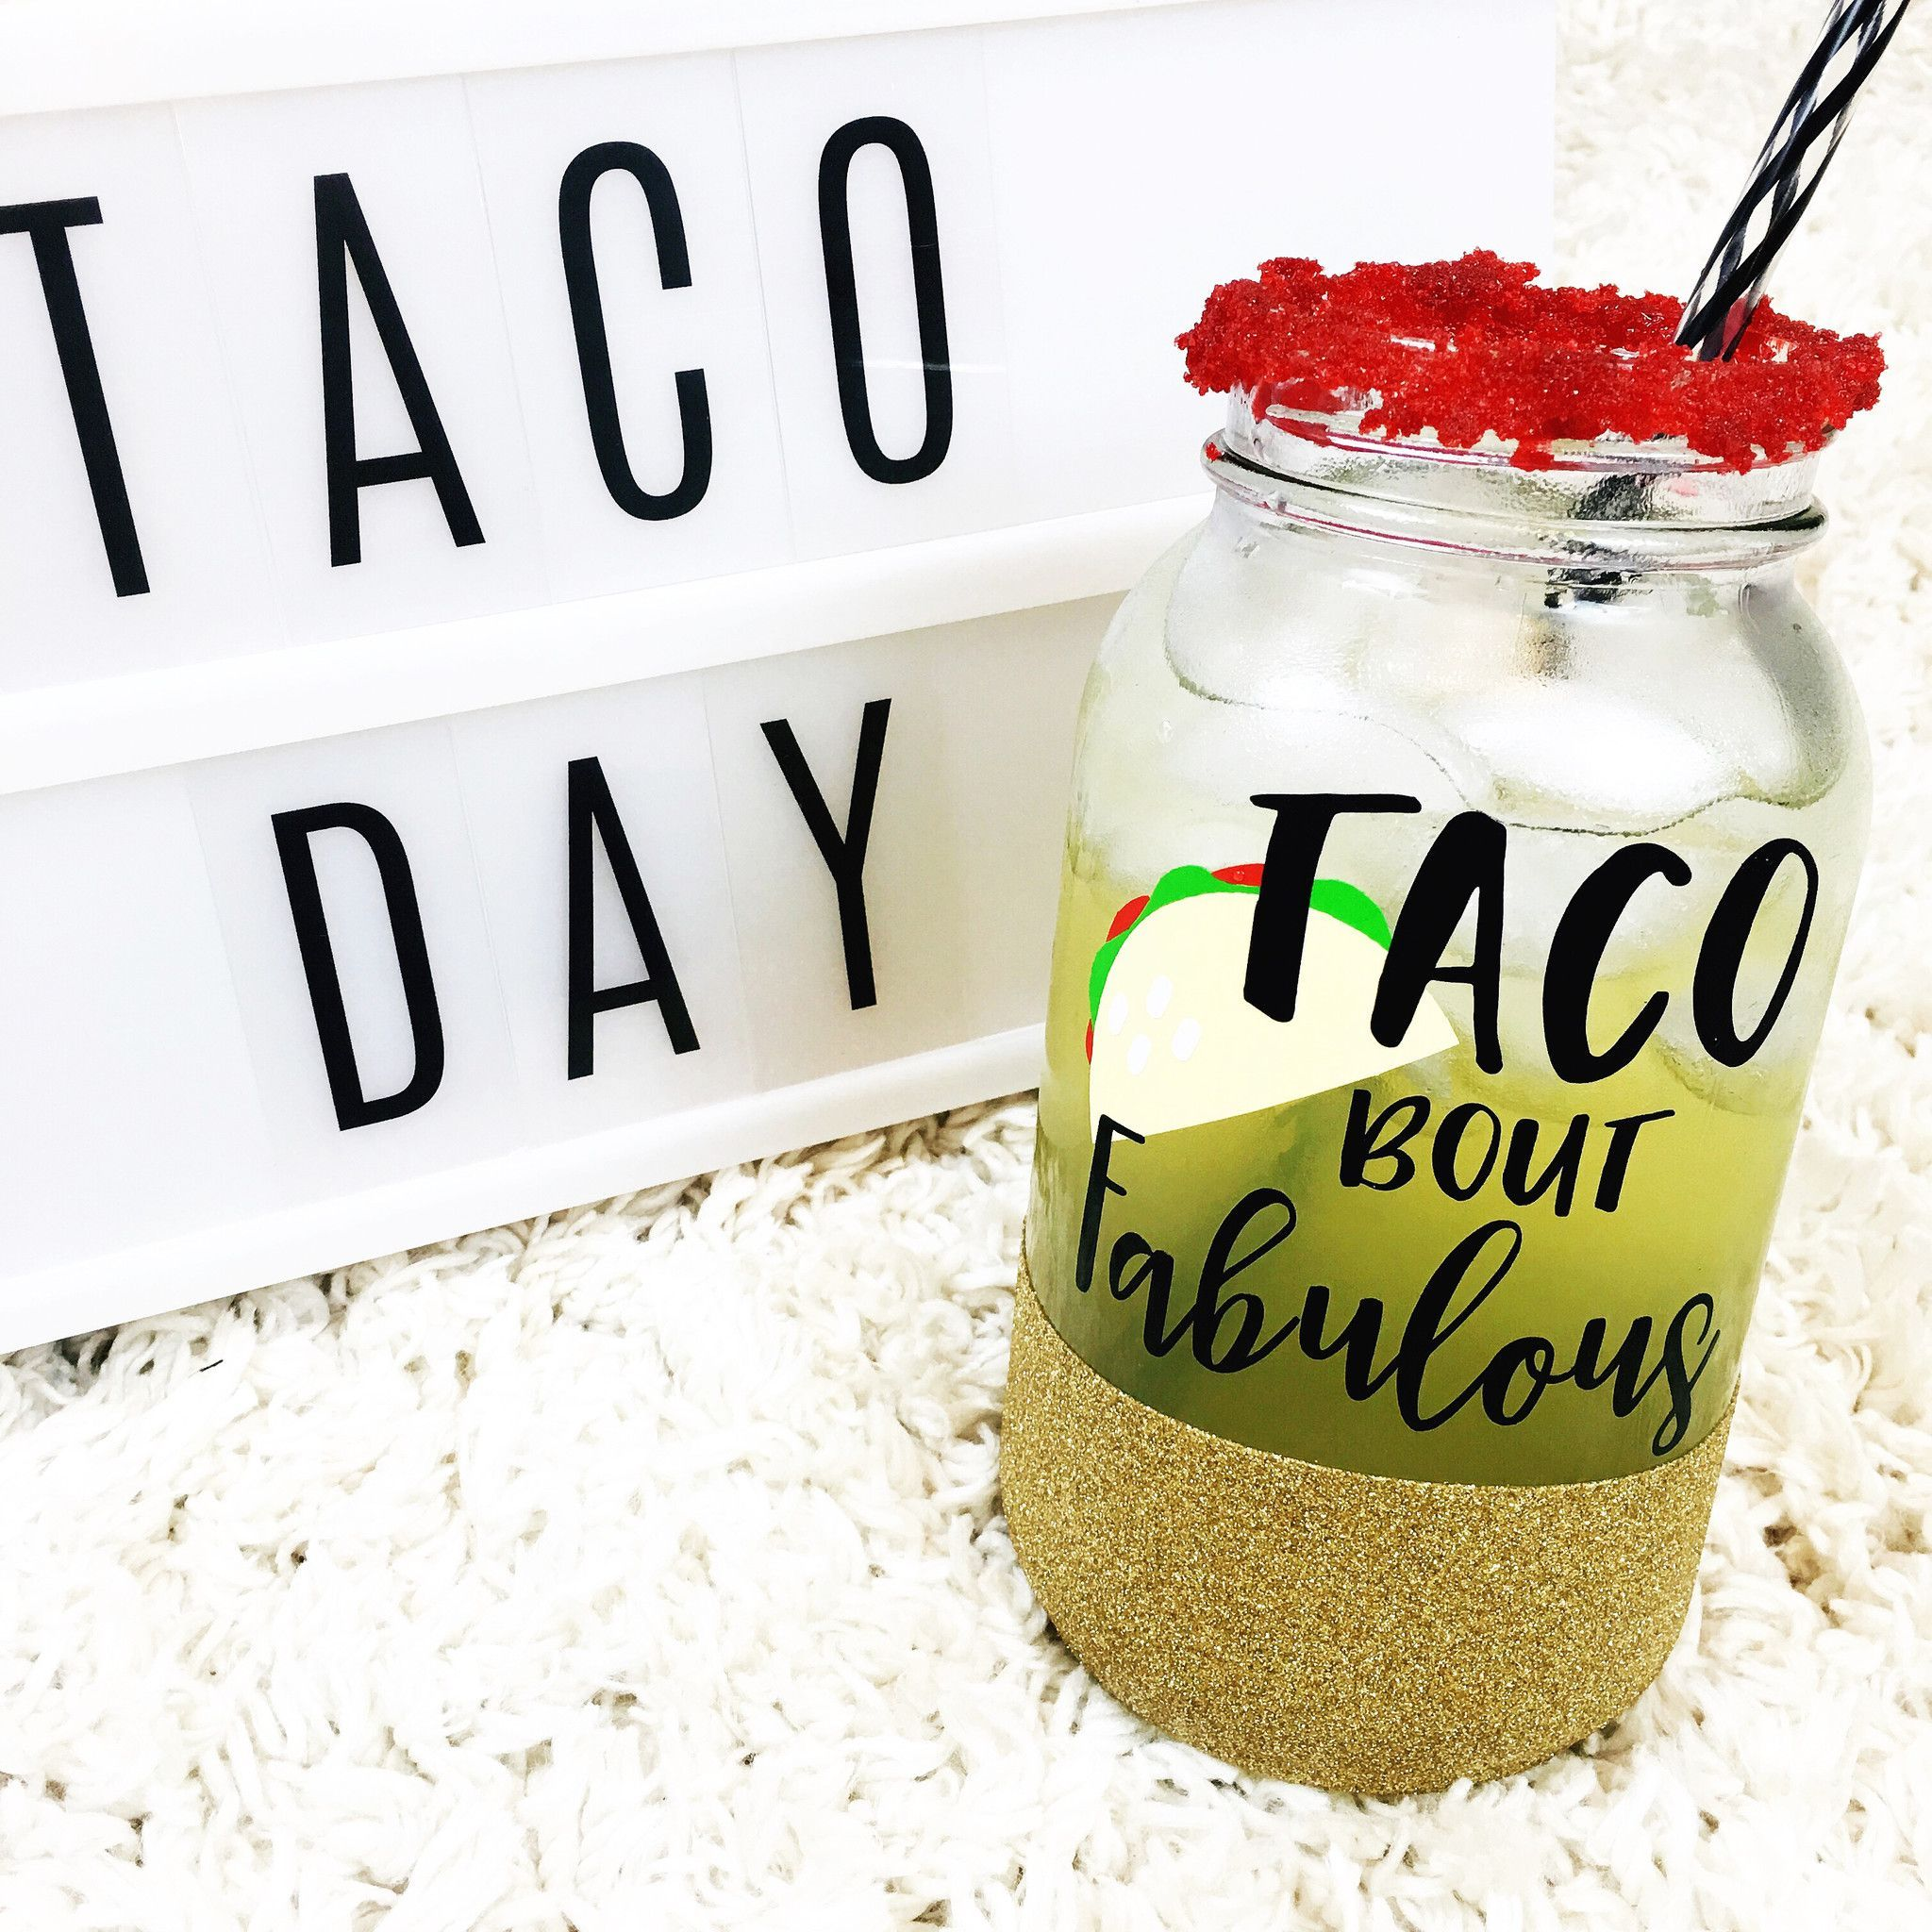 TACO Bout Fabulous Tumbler Jars Masons And Products - Vinyl cup care instructions